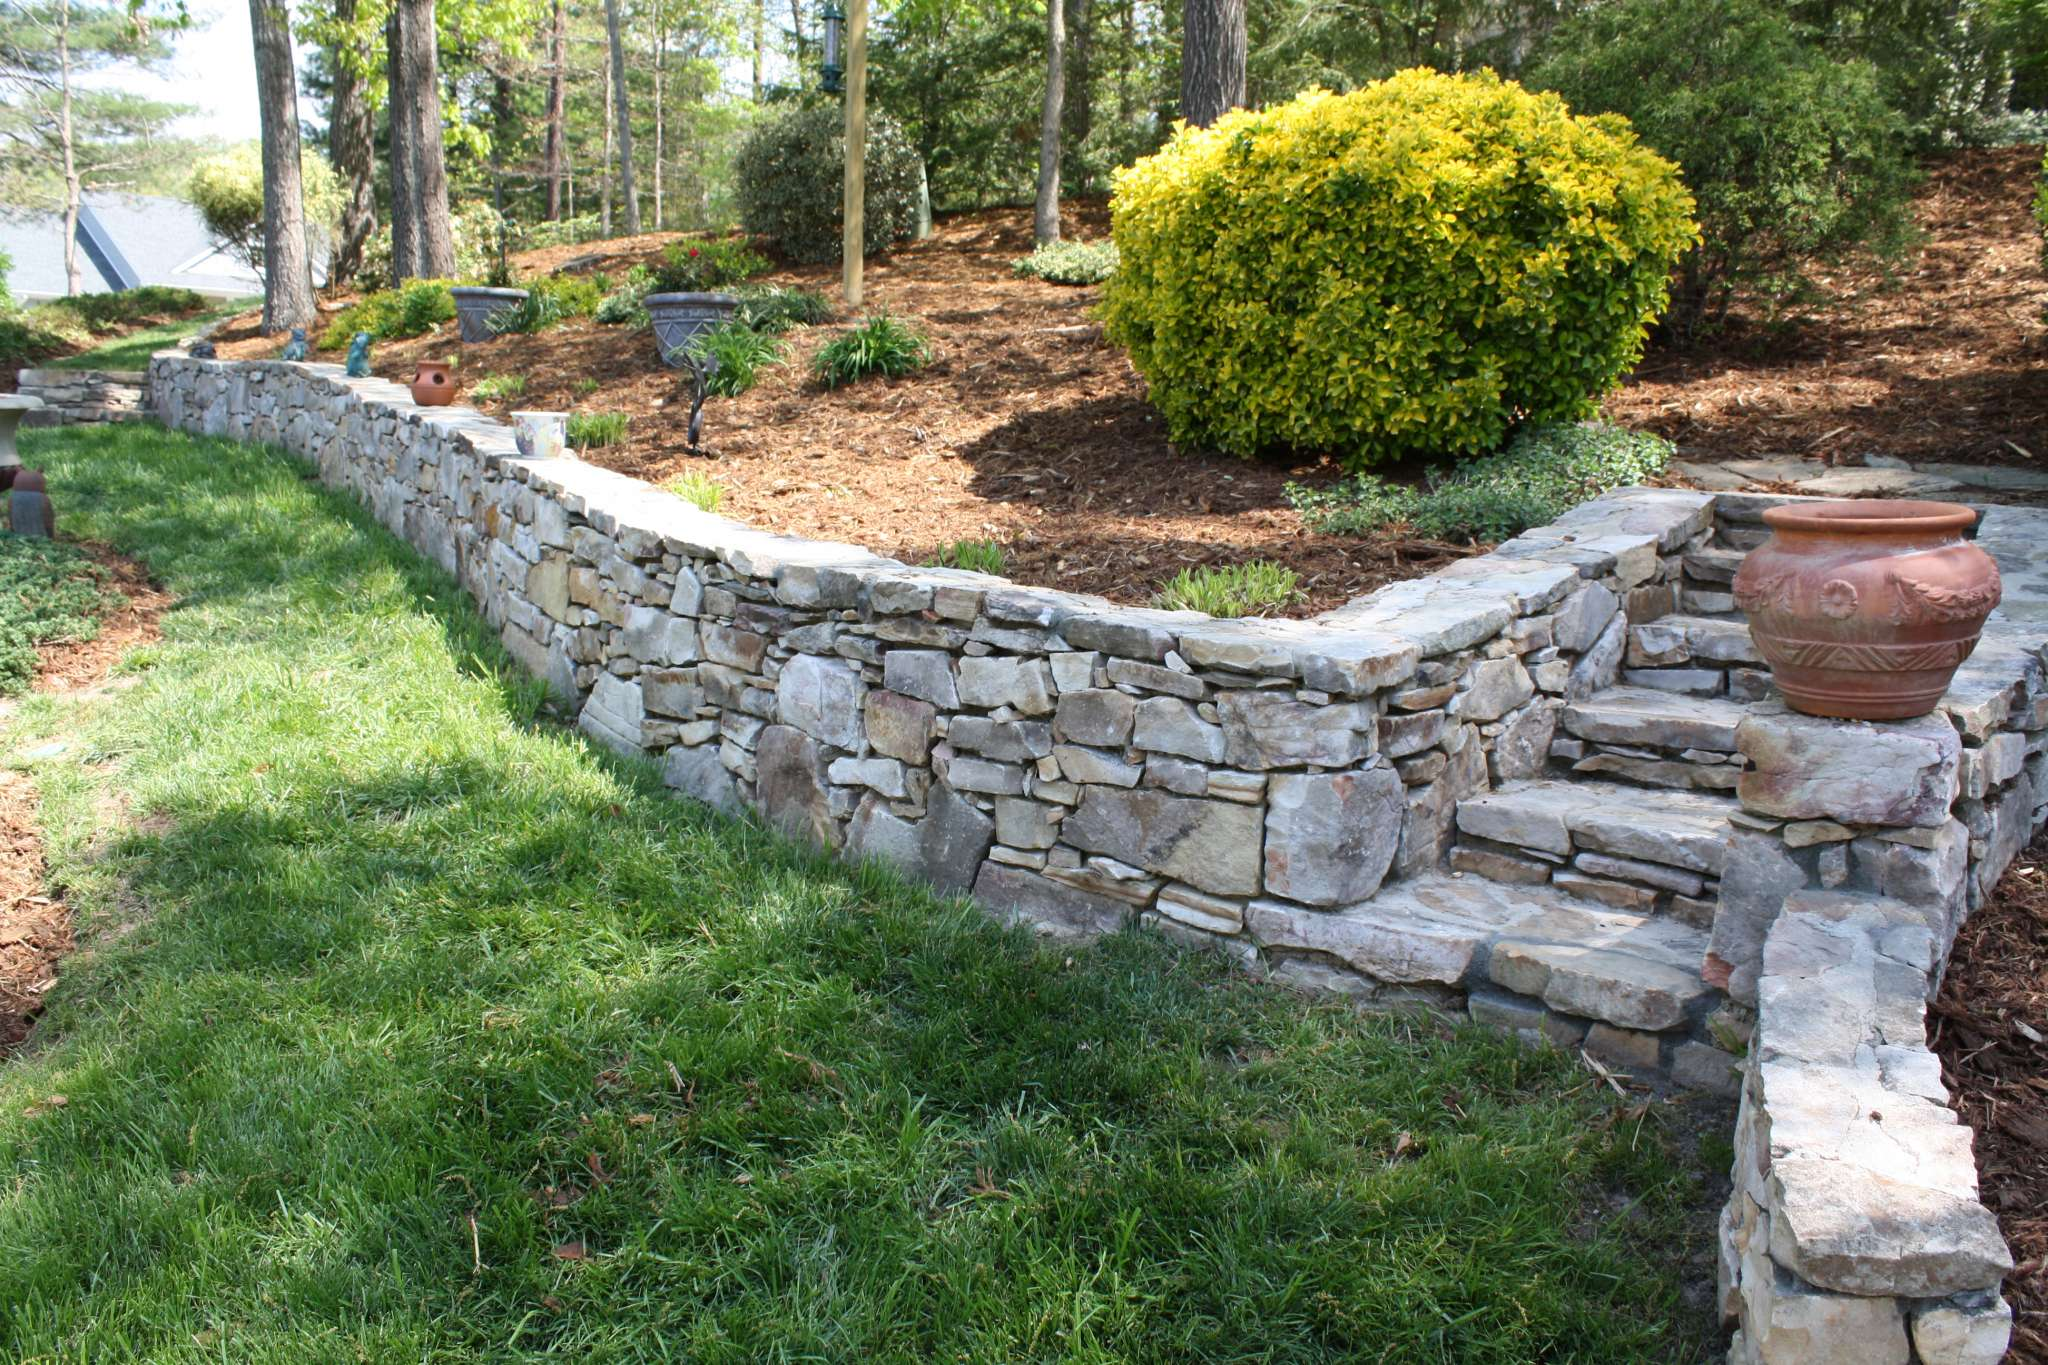 Water Retaining Soil : Retaining walls cut down on soil erosion and add beauty